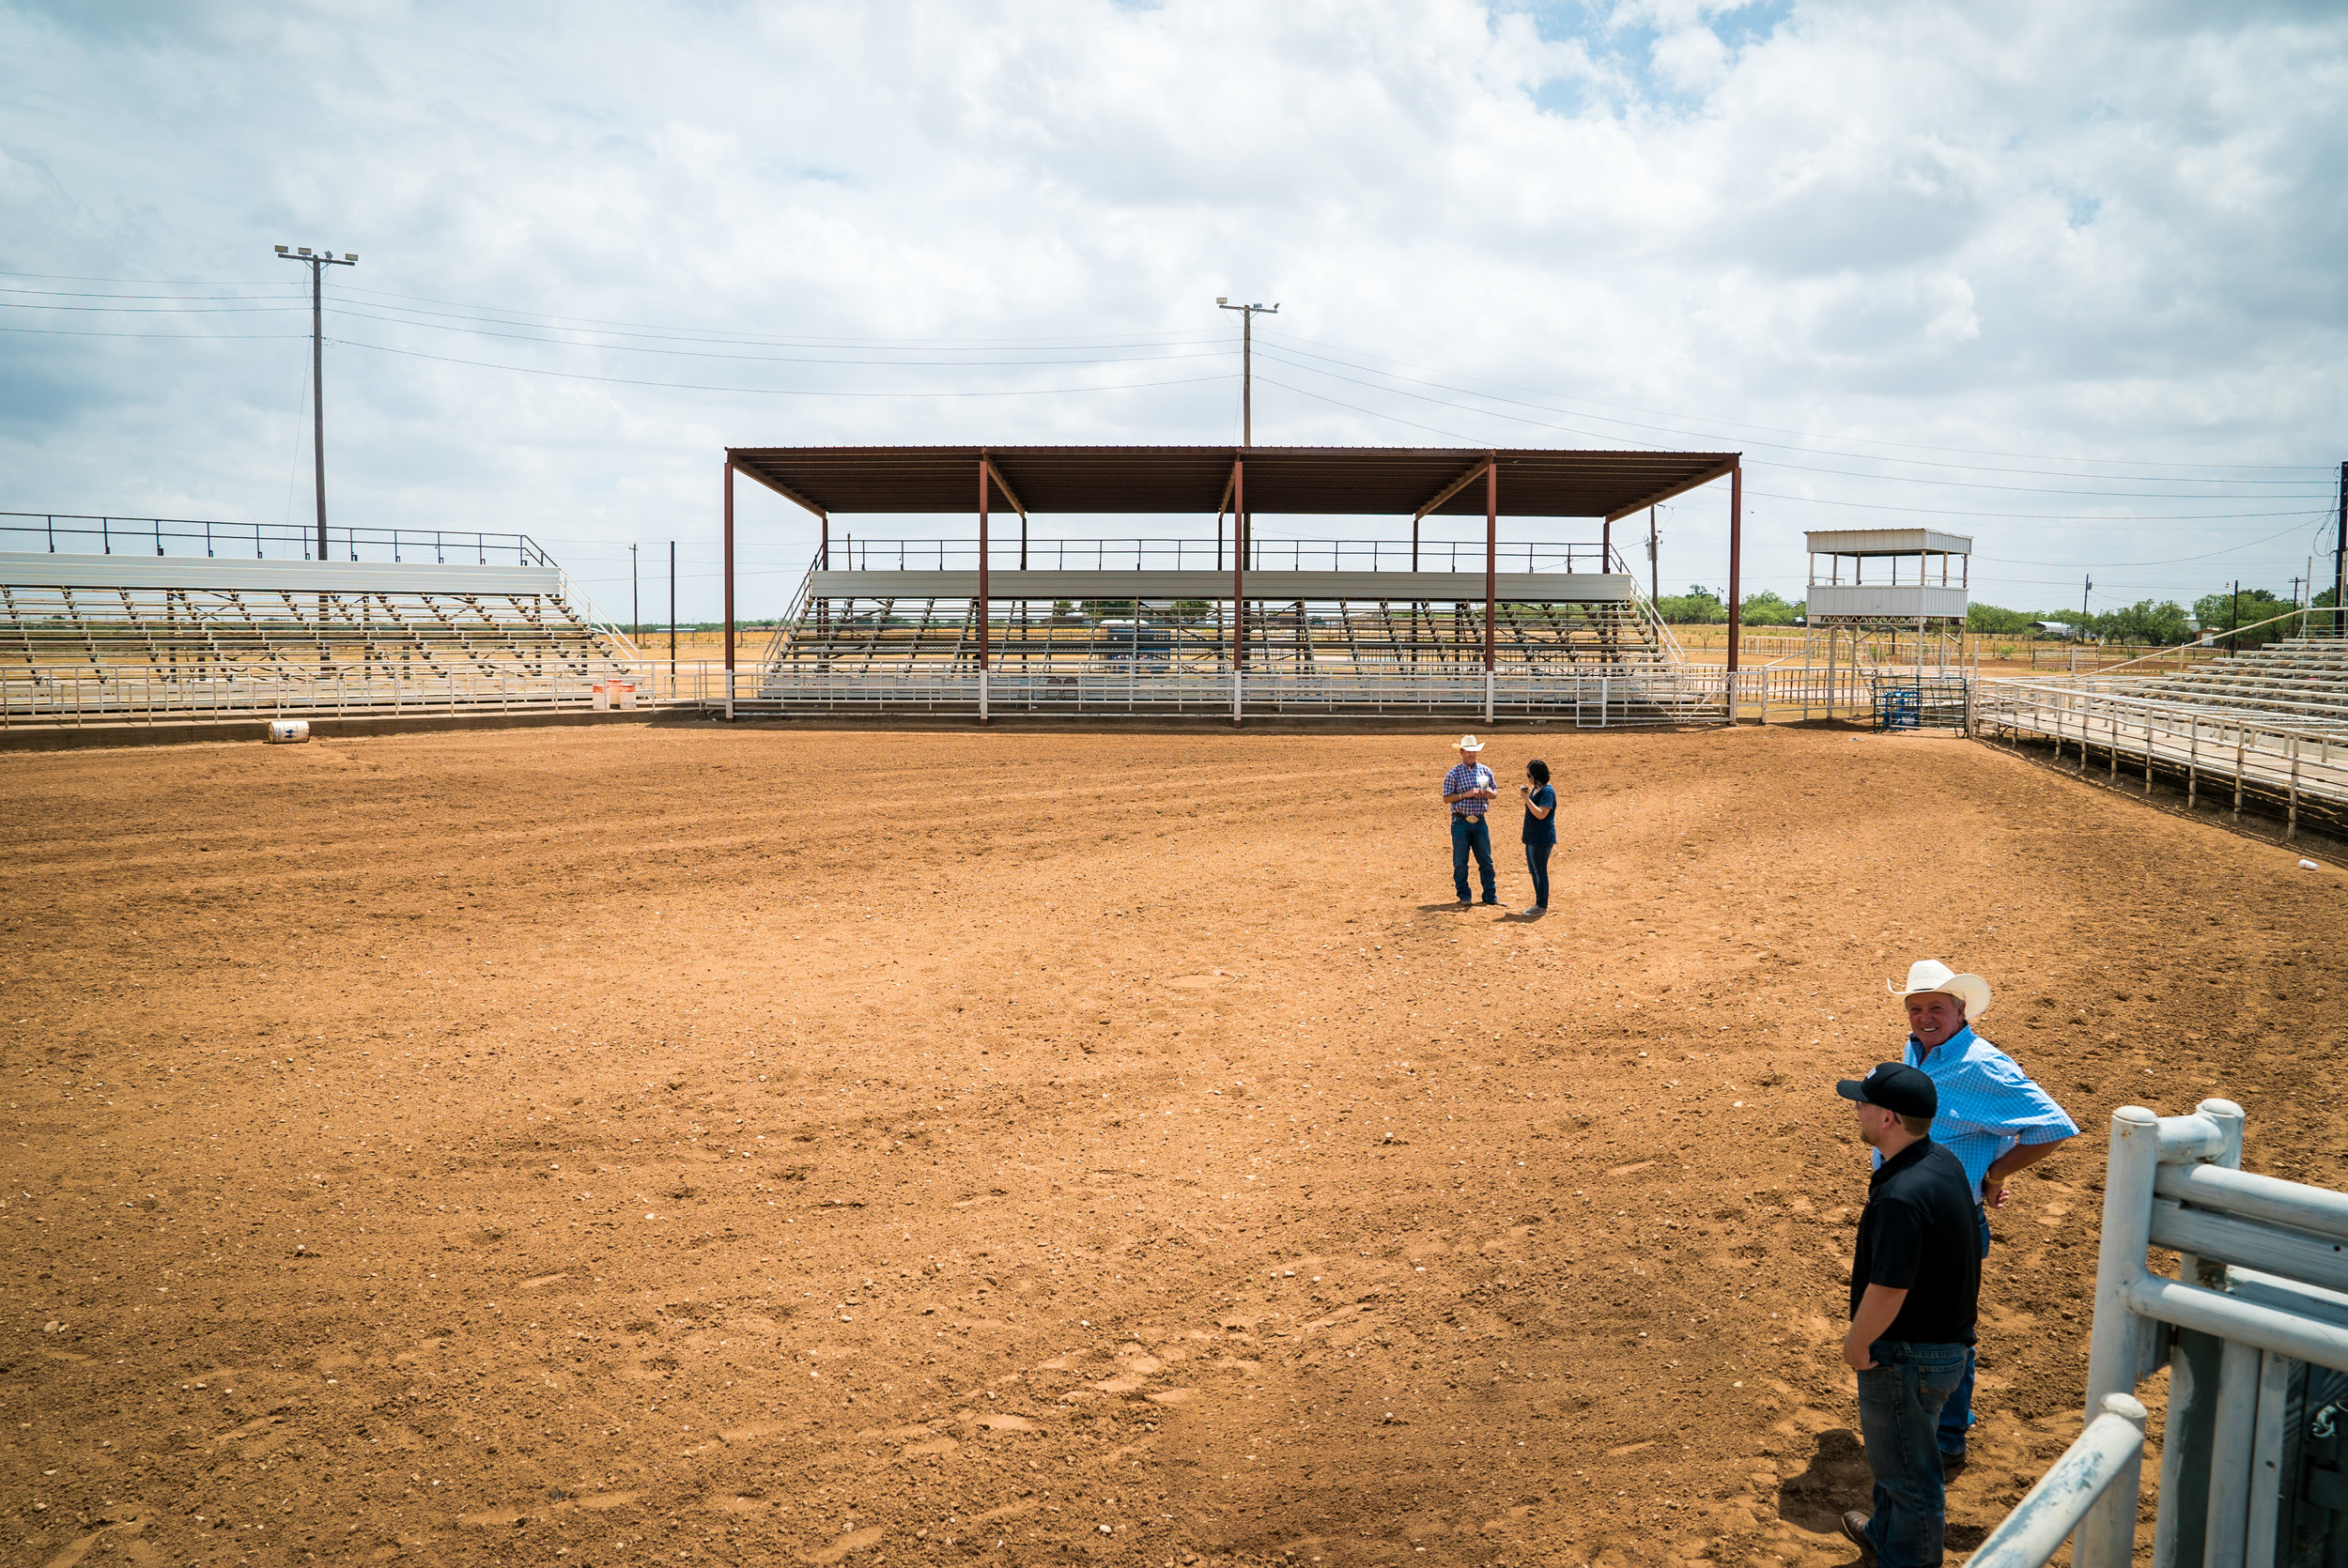 Tuff scouting the Scurry County Rodeo Arena in Snyder, Texas